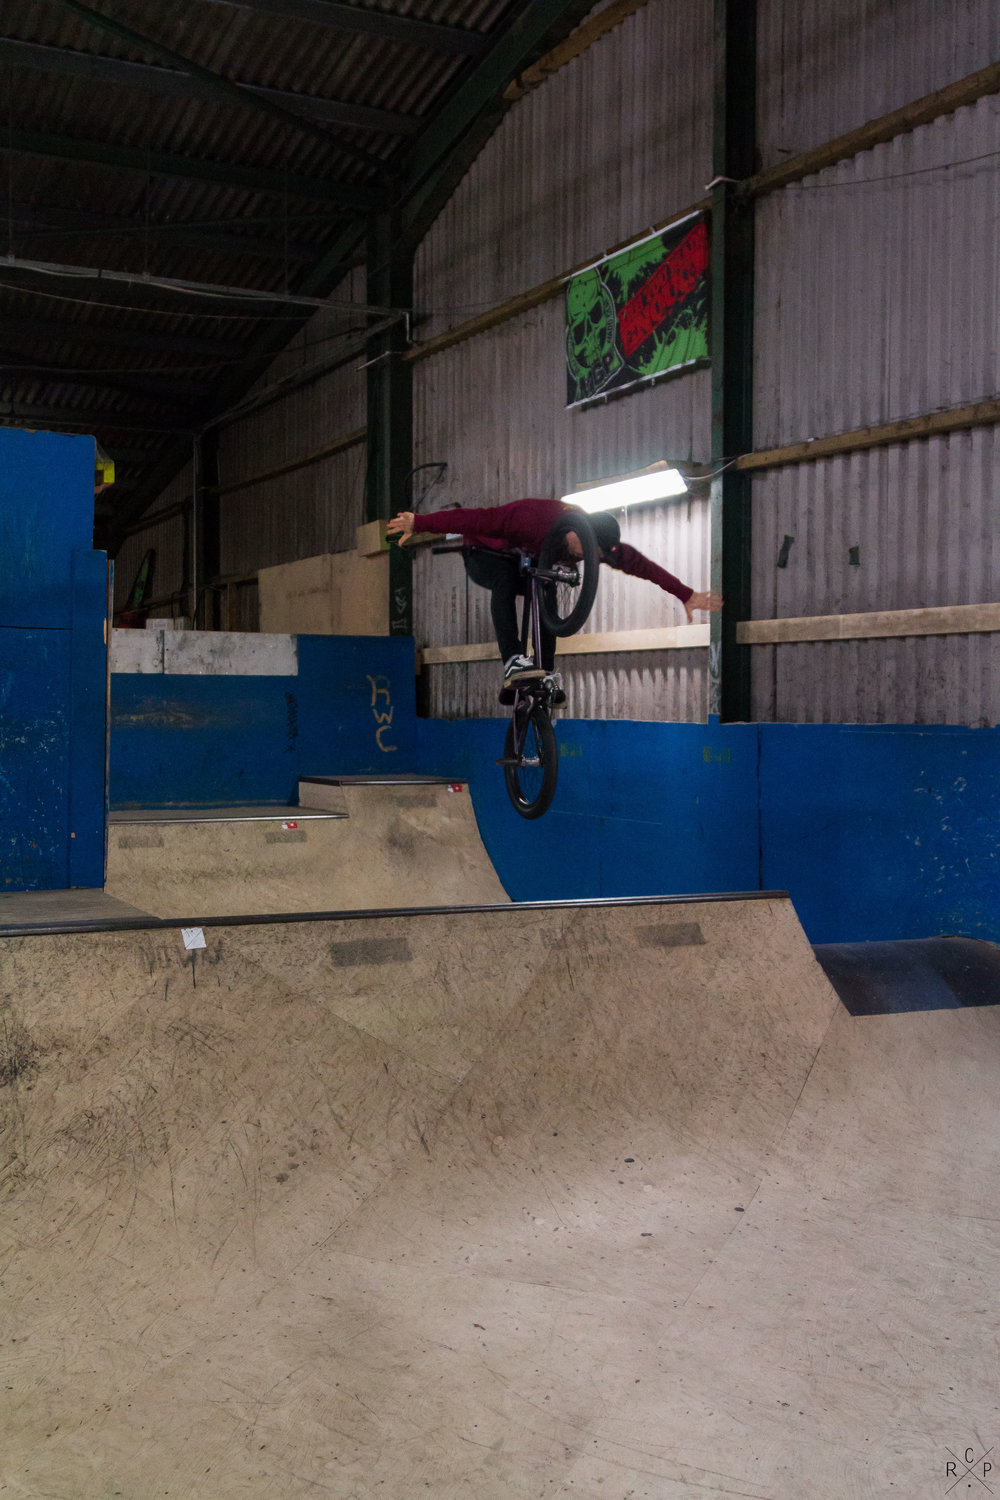 Tuck No-Hander - Ramp City, Blackpool, England 24/11/2016